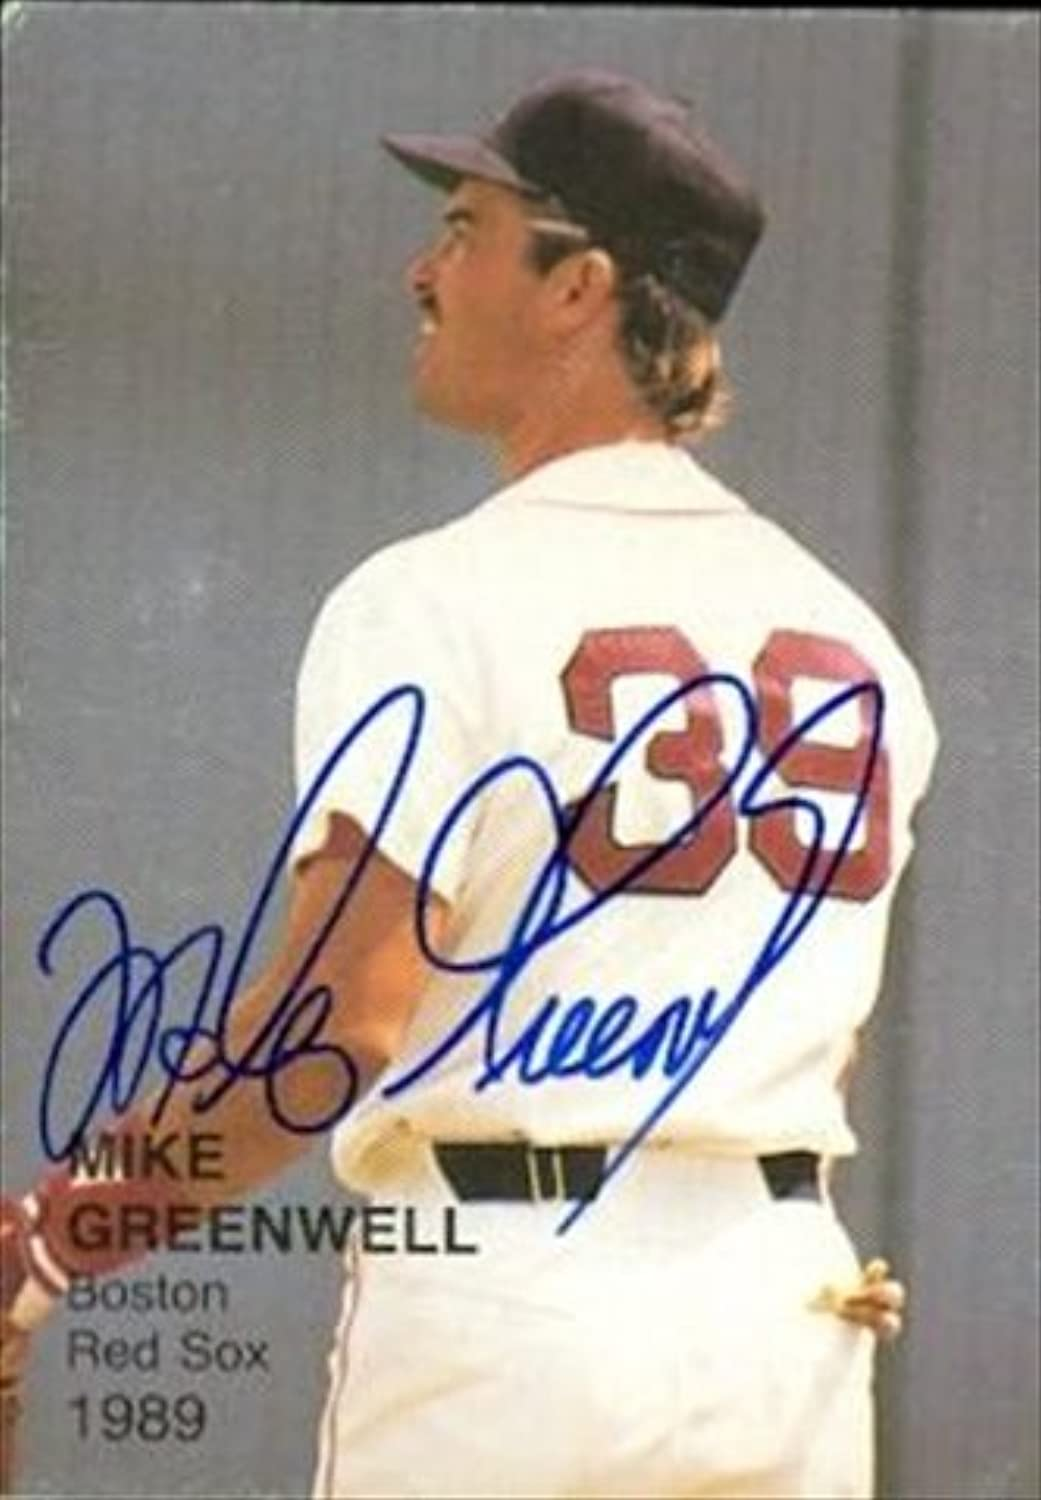 Mike Greenwell autographed Baseball Card (Boston Red Sox) 1989 Baseballs Best One  7  Autographed Baseball Cards